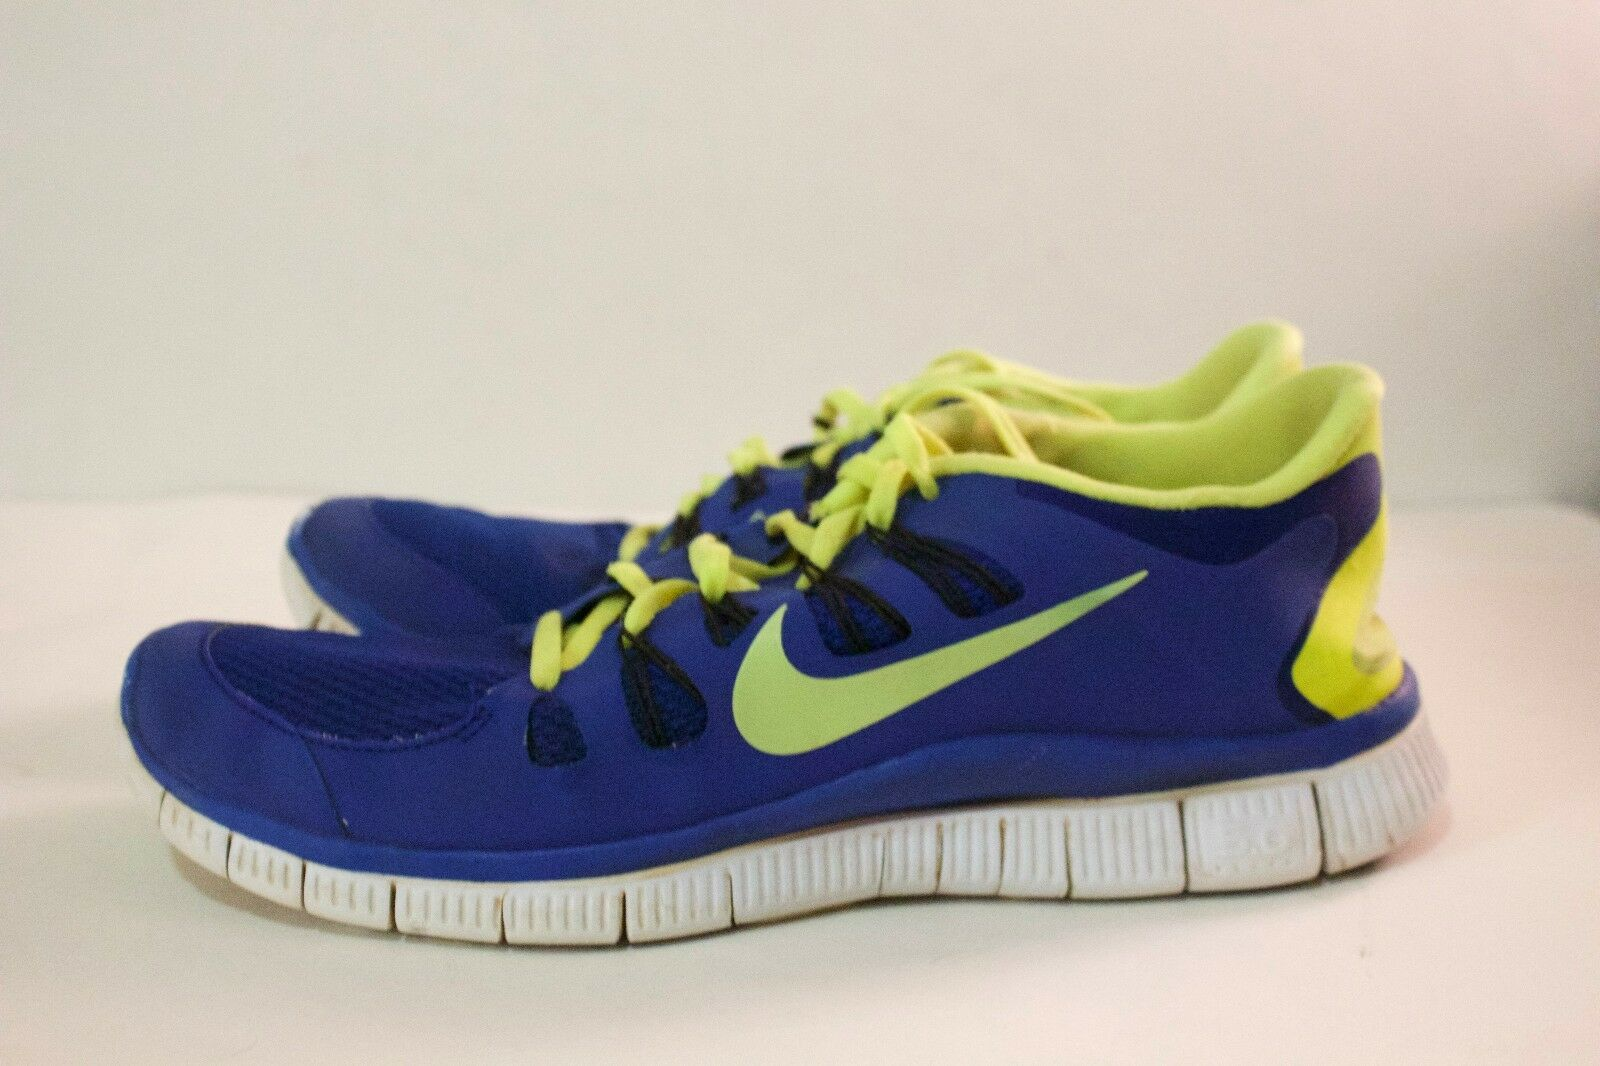 Nike Free Run 5.0 Men's US Size 11 and Royal Blue and 11 Neon Yellow Great condition f396bf